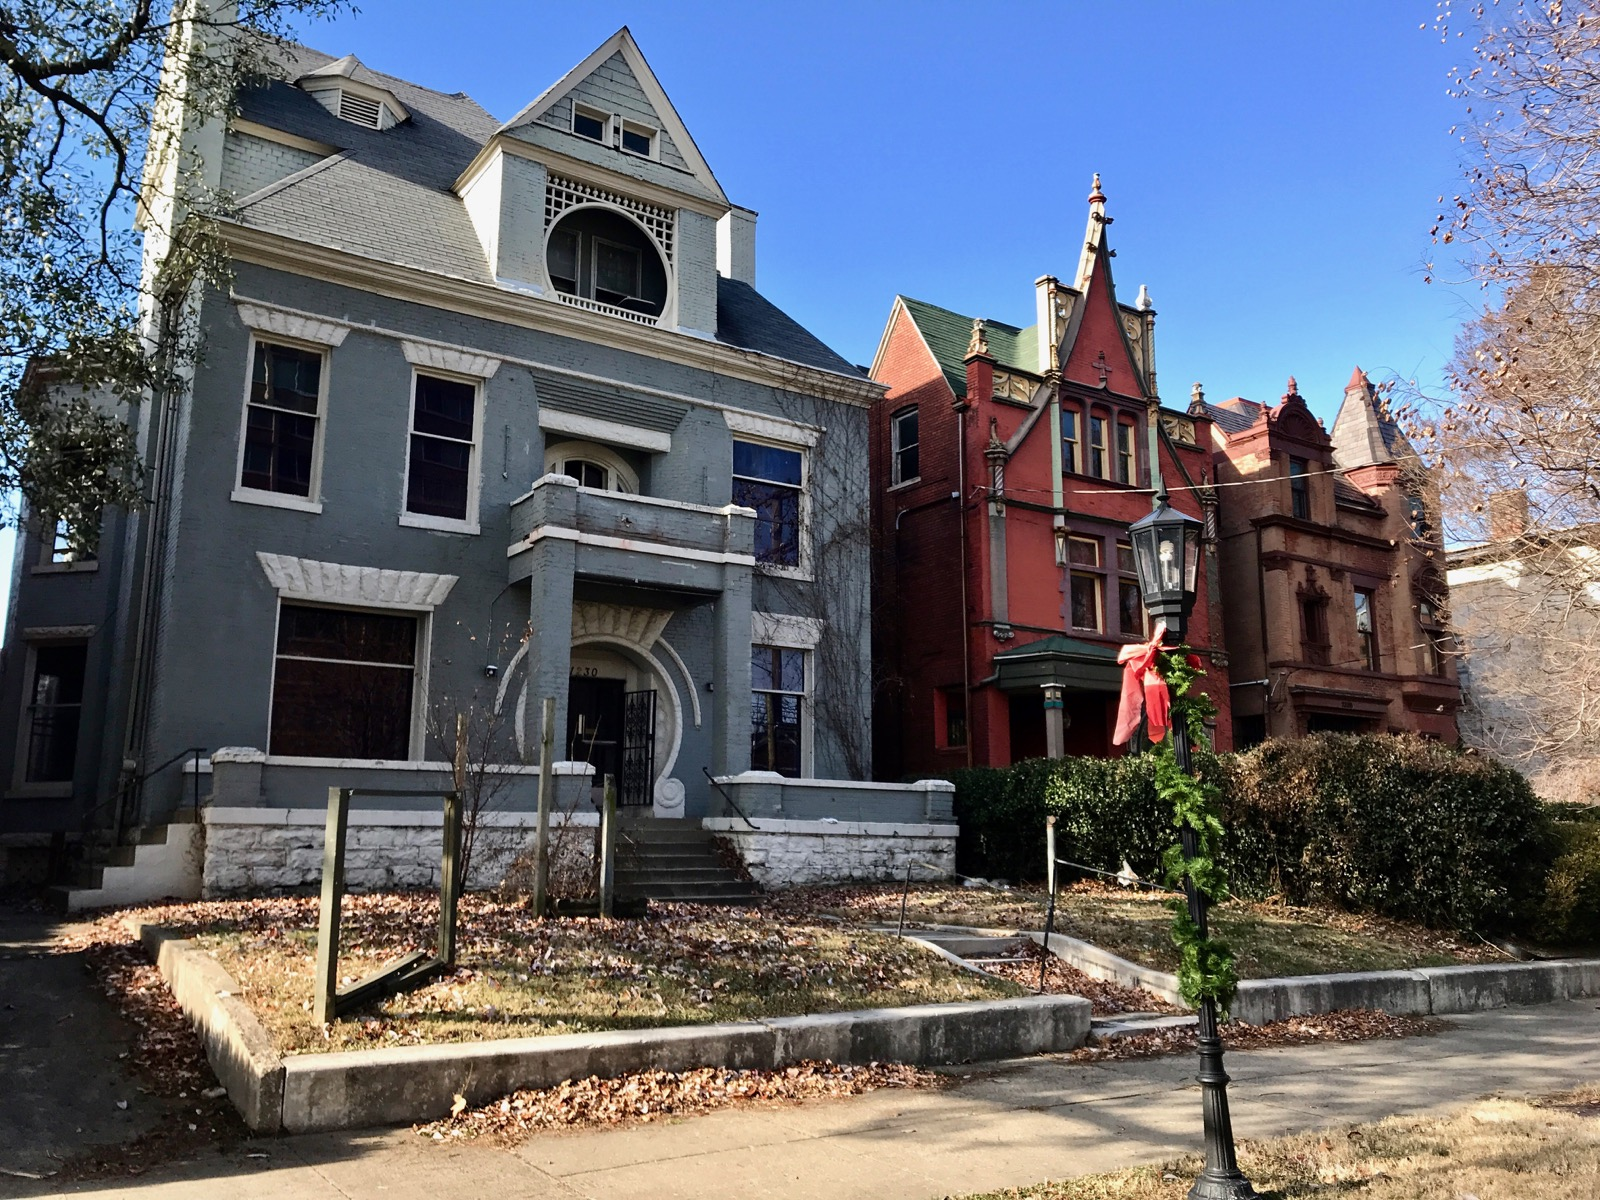 "Built in the late 1800s, Lousiville's historic district—termed ""Old Louisville""—runs along Second and Third Streets less than a mile from downtown. The collection of grand mansions constitutes one of the densest architectural enclaves in the United States. Styles include Romanesque, Victorian Gothic, Italianate, Queen Anne, and Chateauesque. Heavy ornamentation and intricate details abound throughout. / Image: Brian Planalp // Published: 12.30.17"